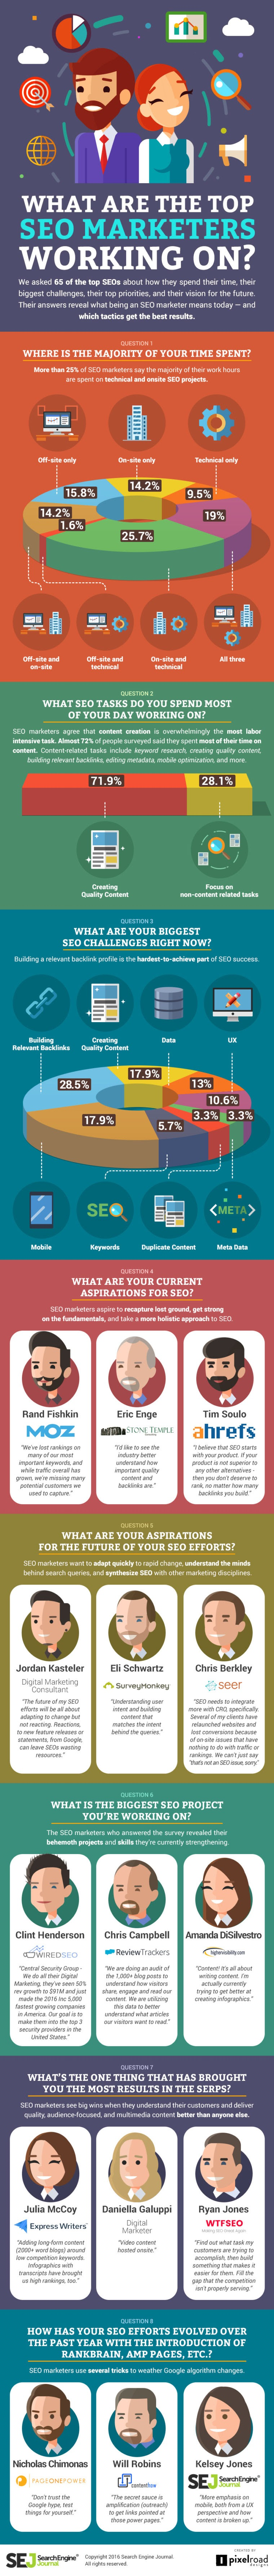 What Gets The Most Results for Top SEOs? - #Infographic